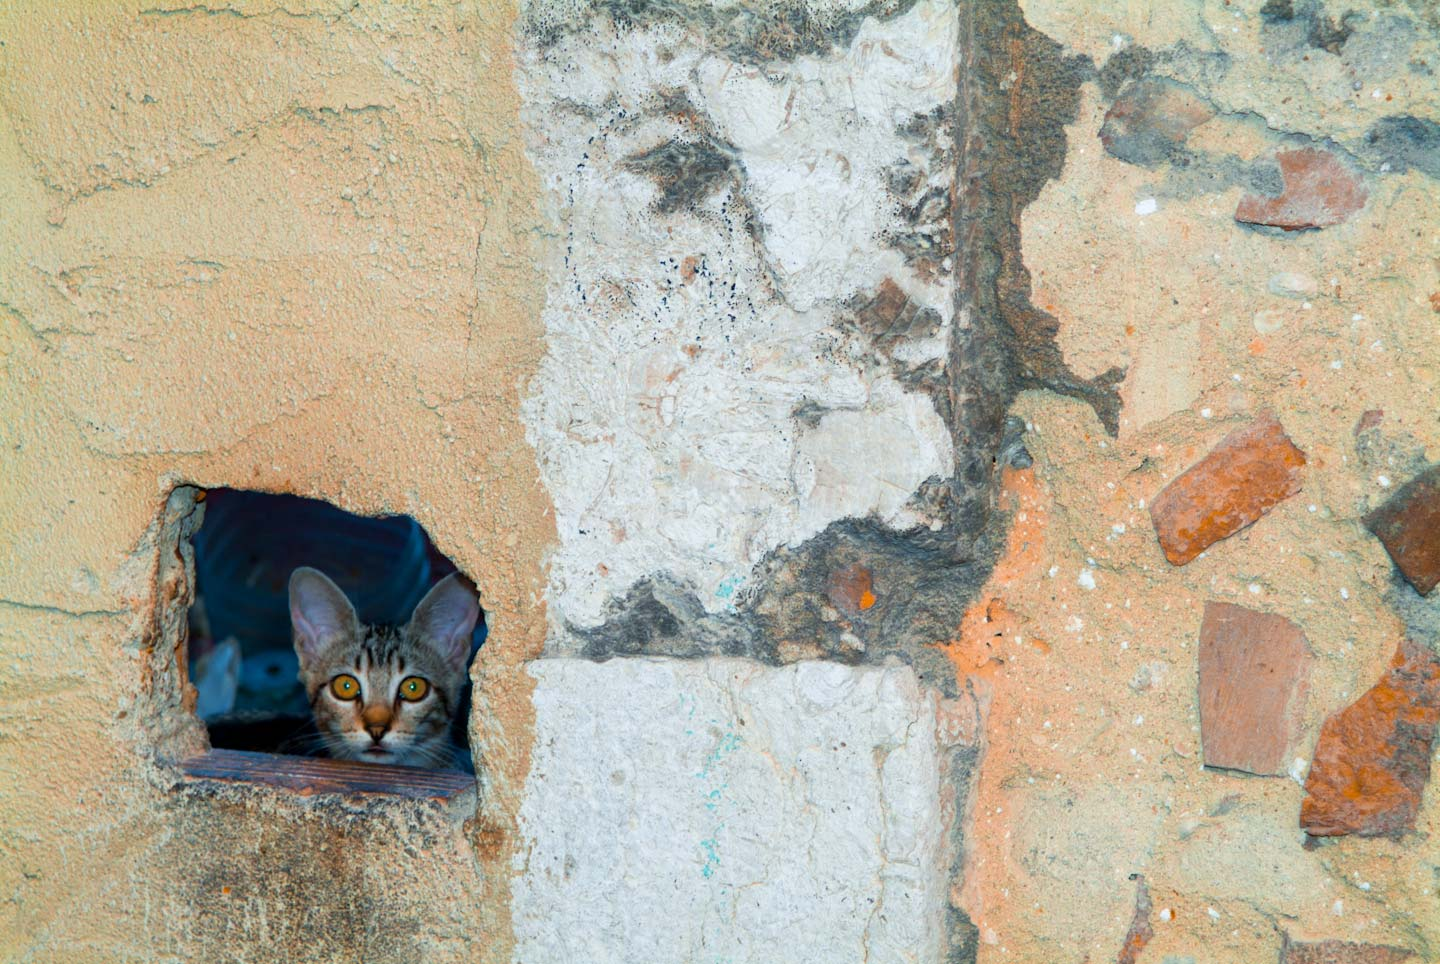 Portugal,_cat_peeking_through_hole-24.jpg